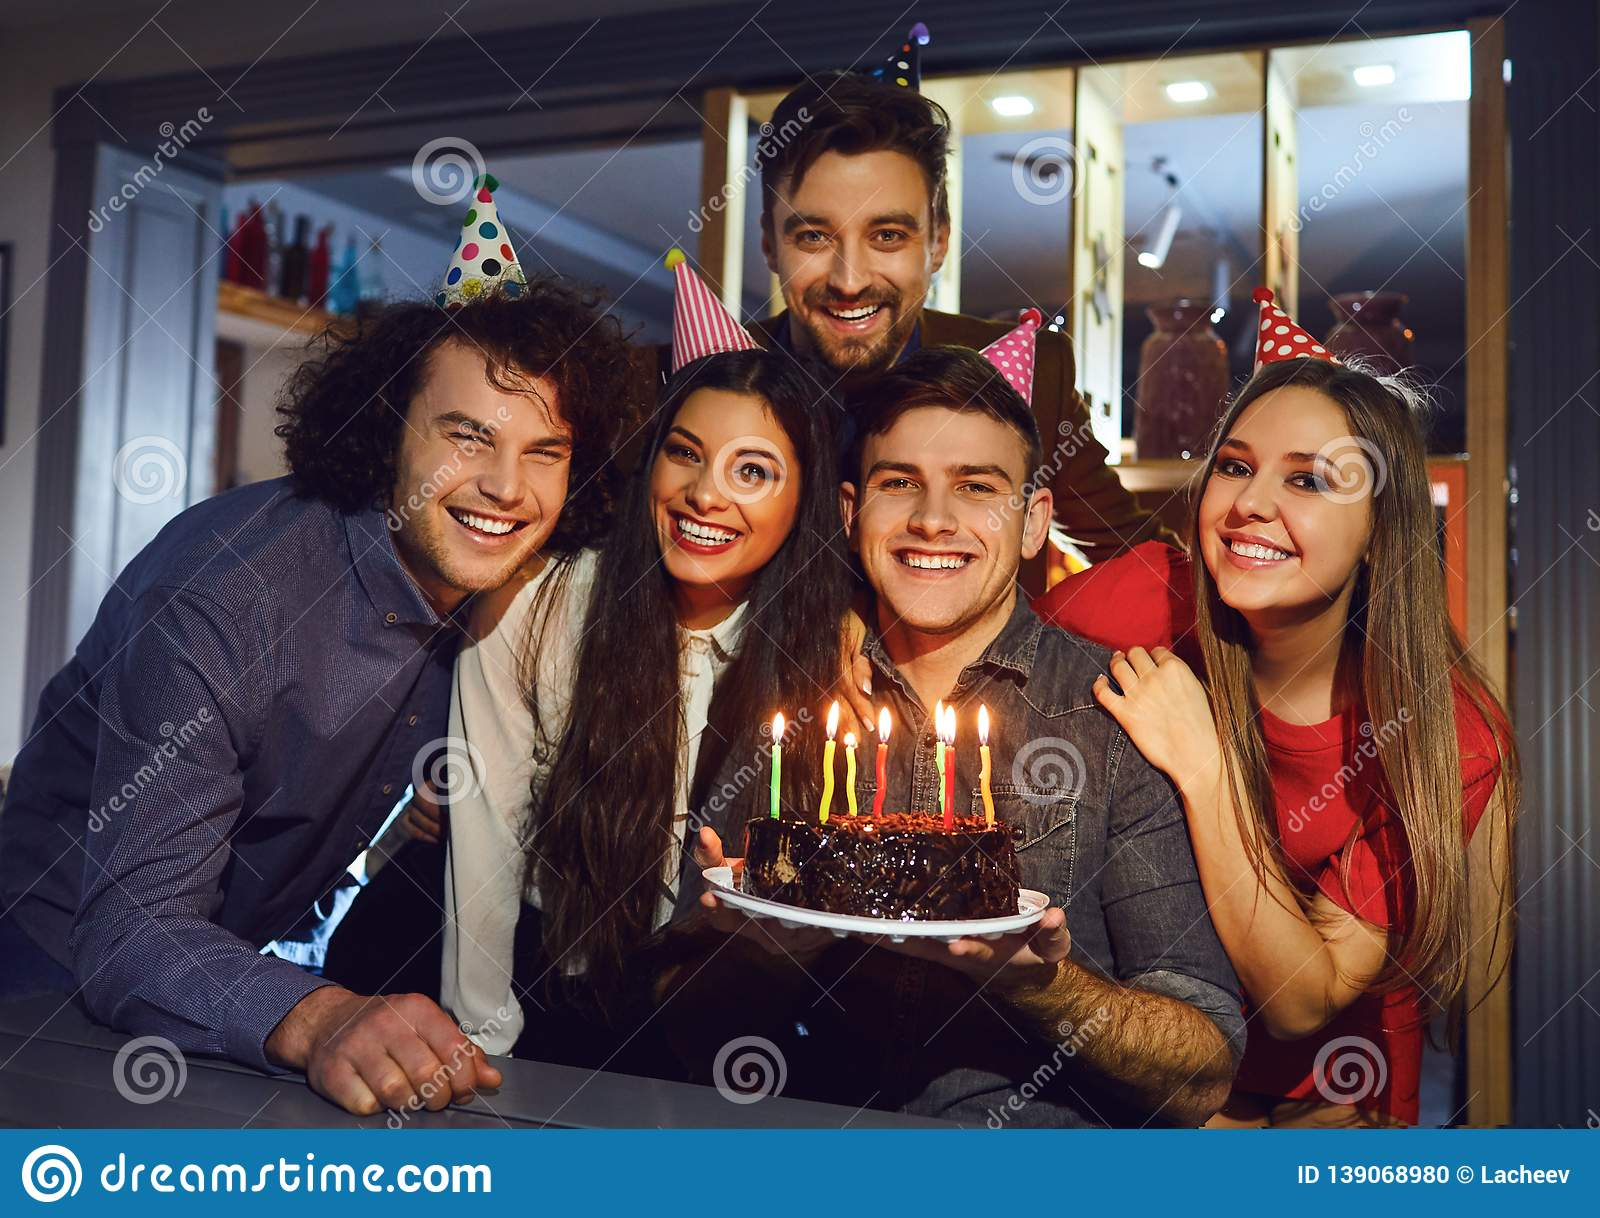 Group of friends celebrating birthday with birthday cake at restaurant